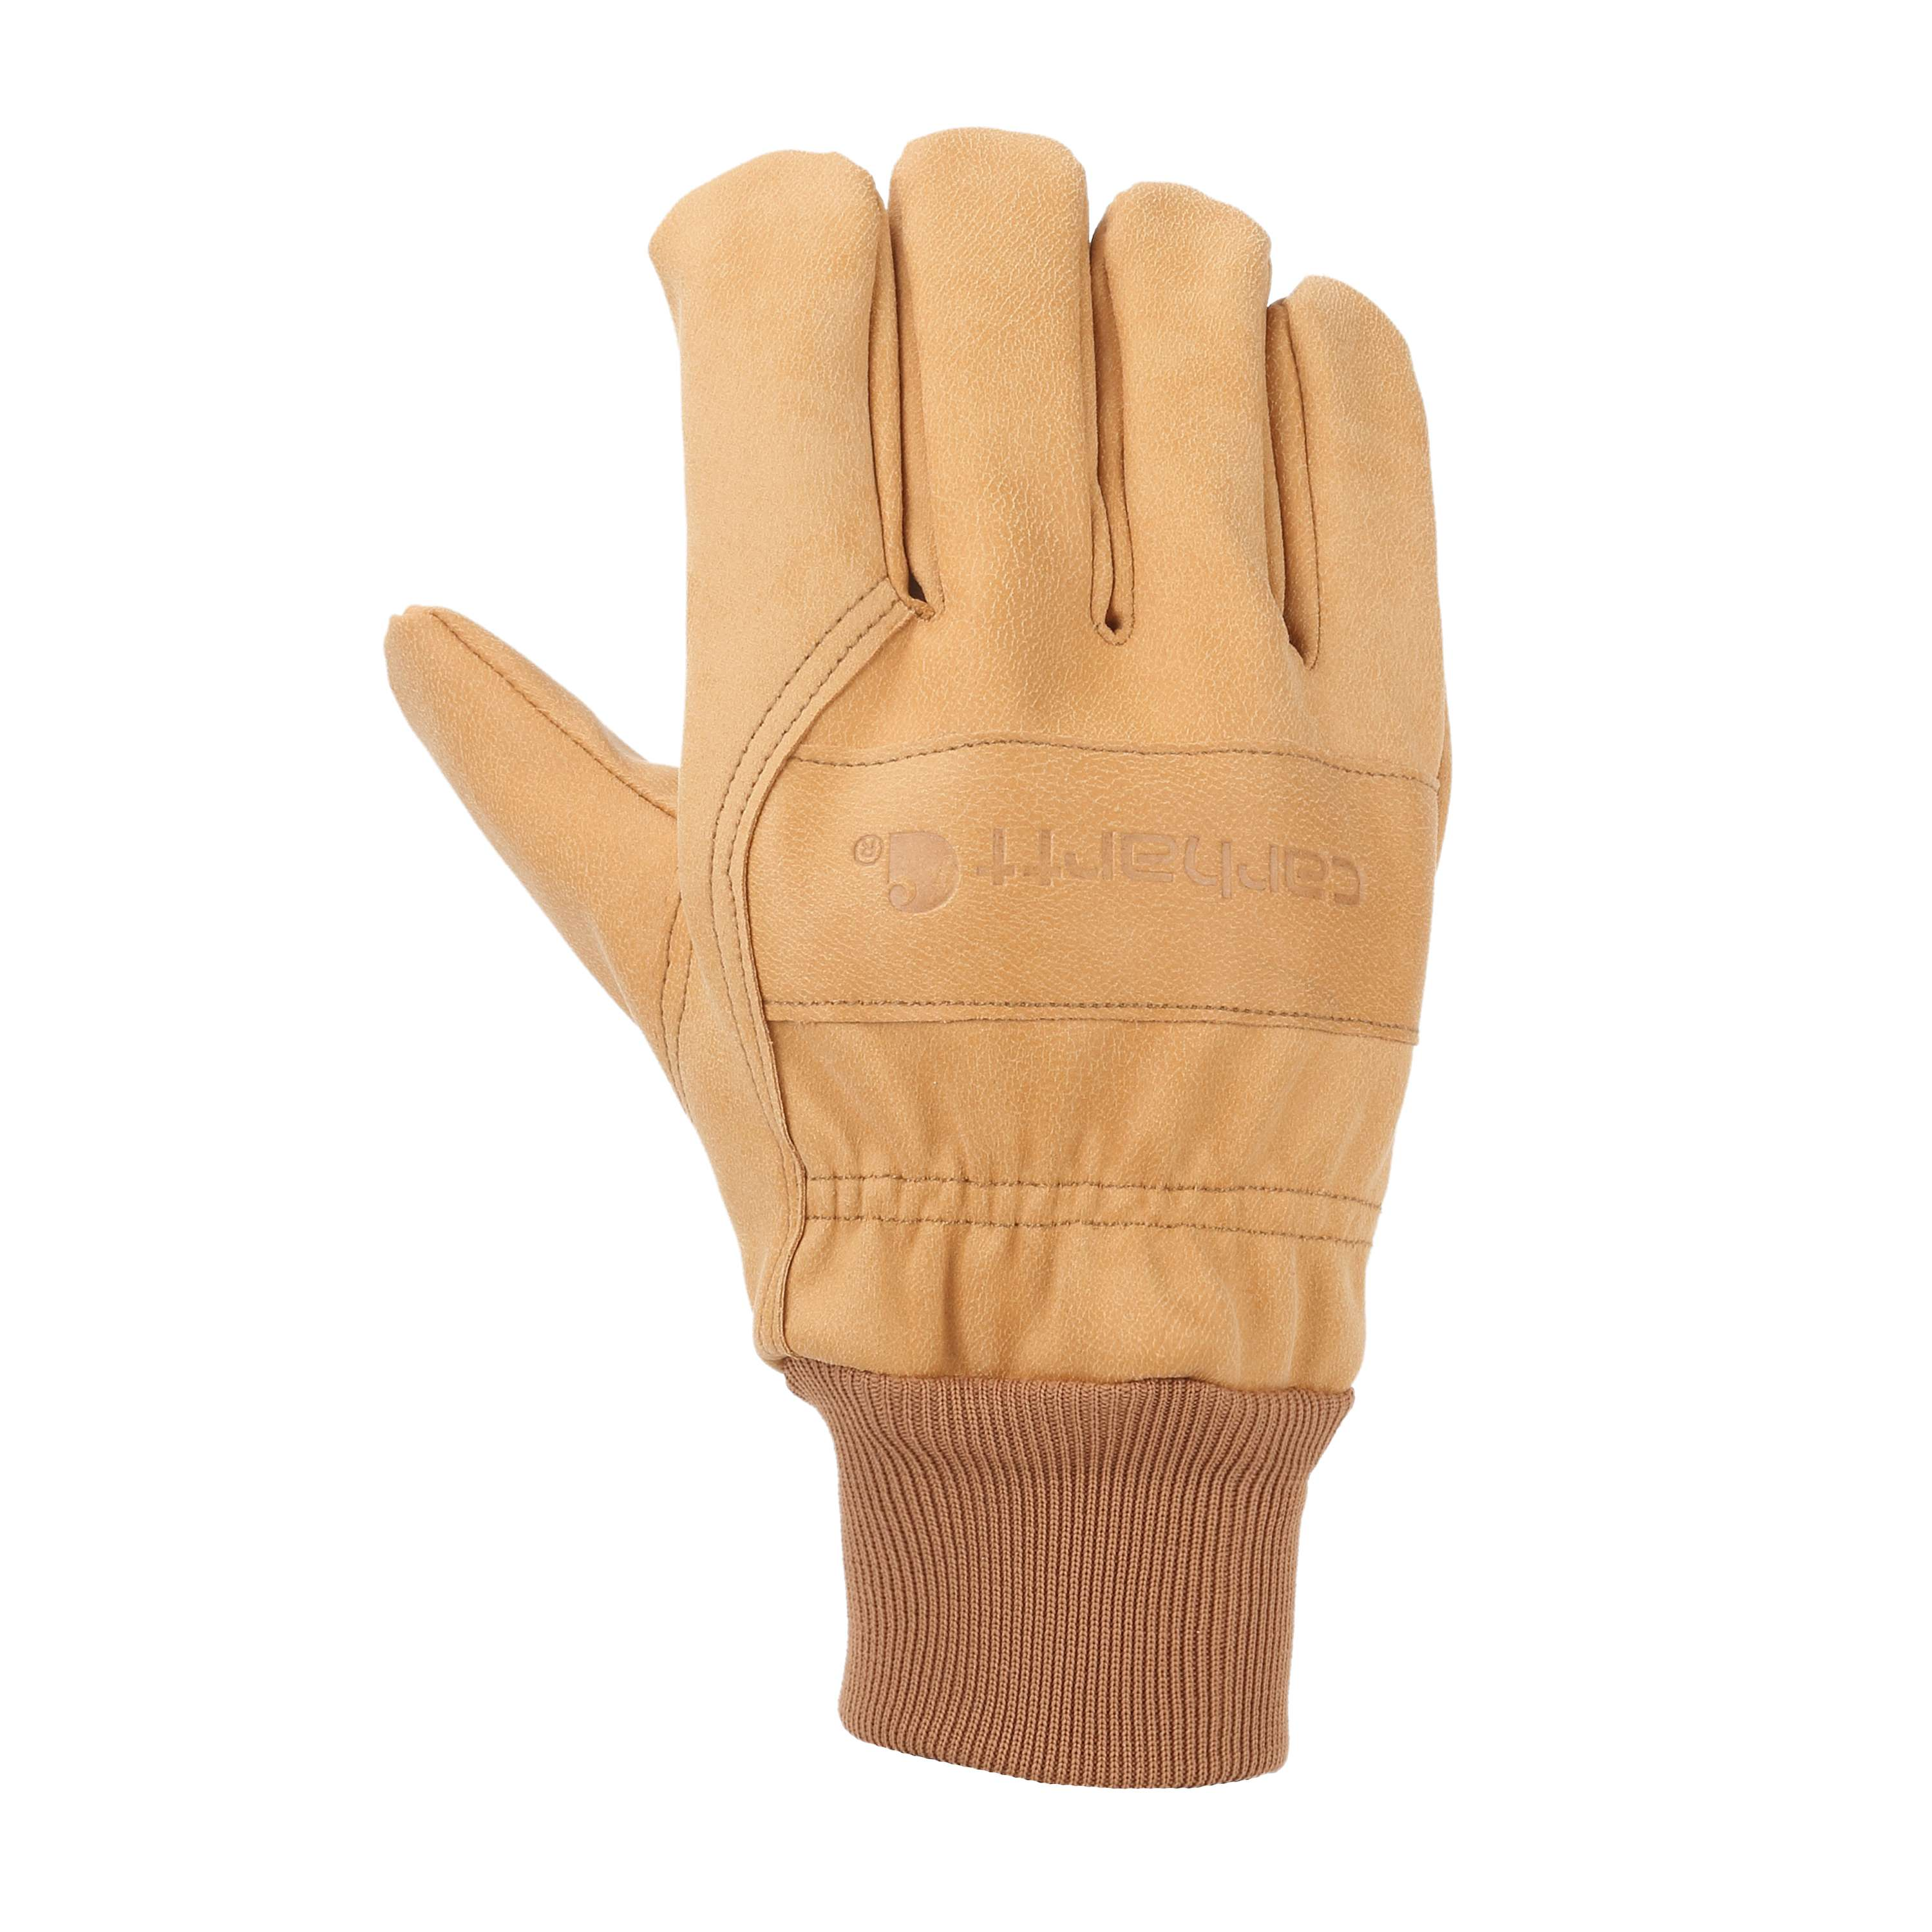 Carhartt Insulated Gunn Cut Knit Cuff Work Glove